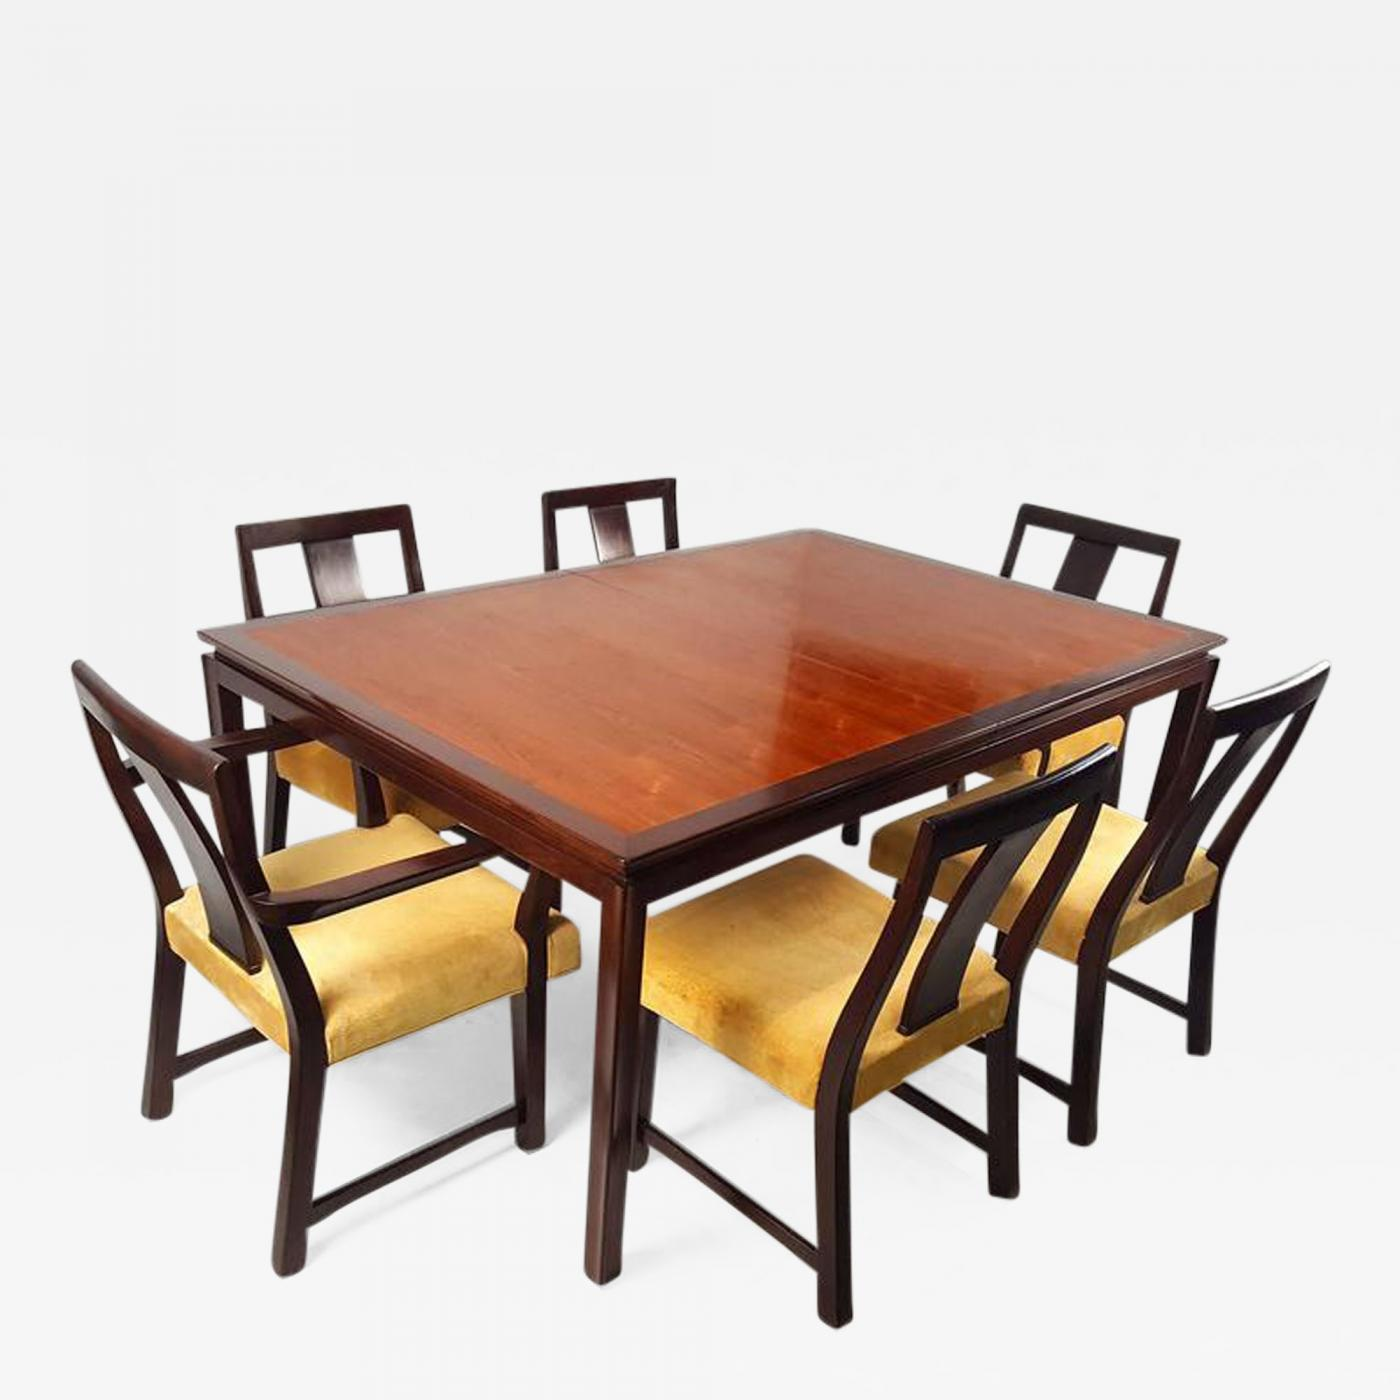 Formal Dining Table: Edward Wormley For Dunbar Formal Dining